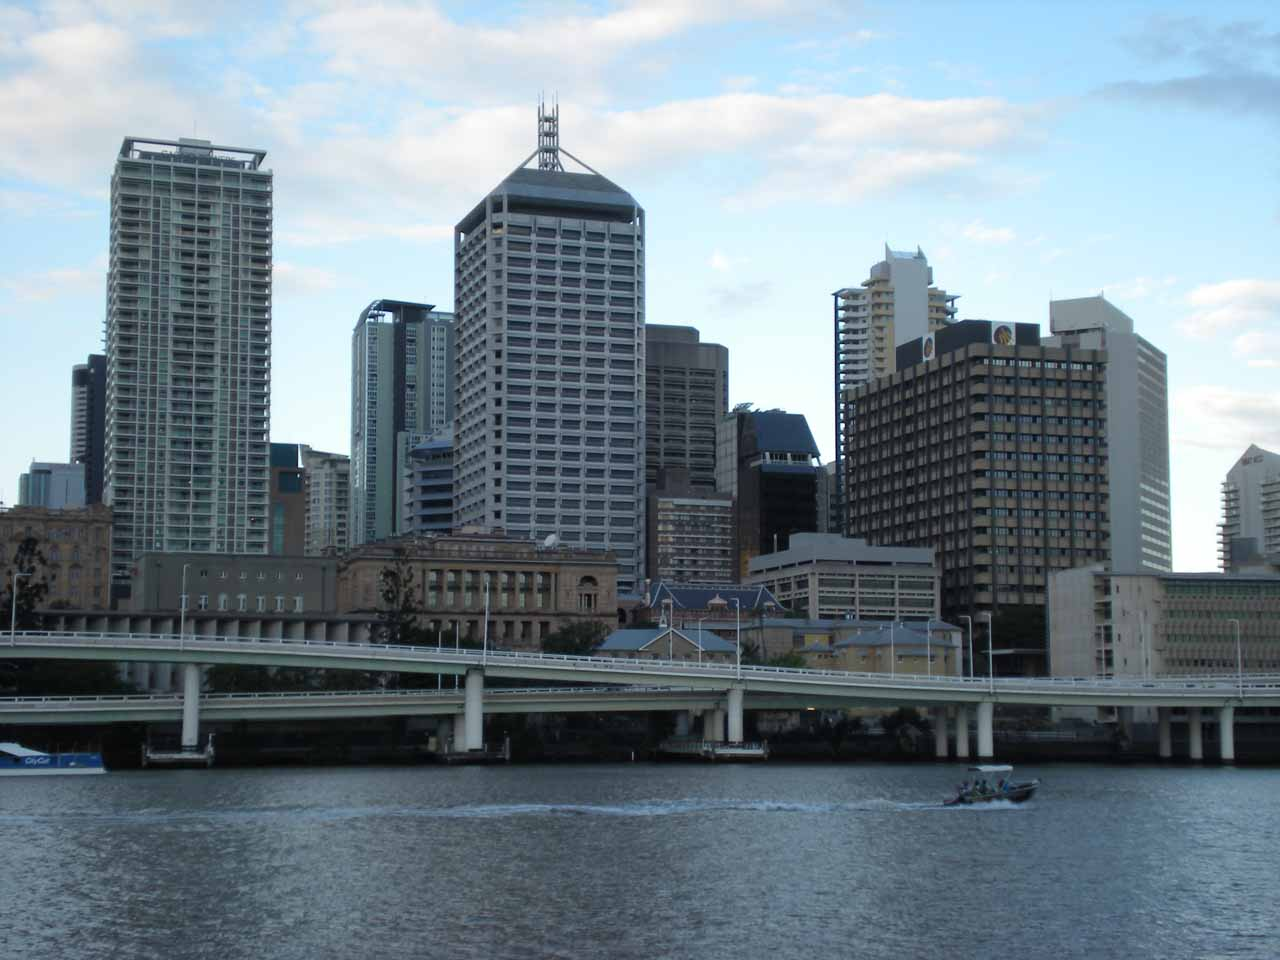 Looking across the Brisbane River at the high rises of the CBD